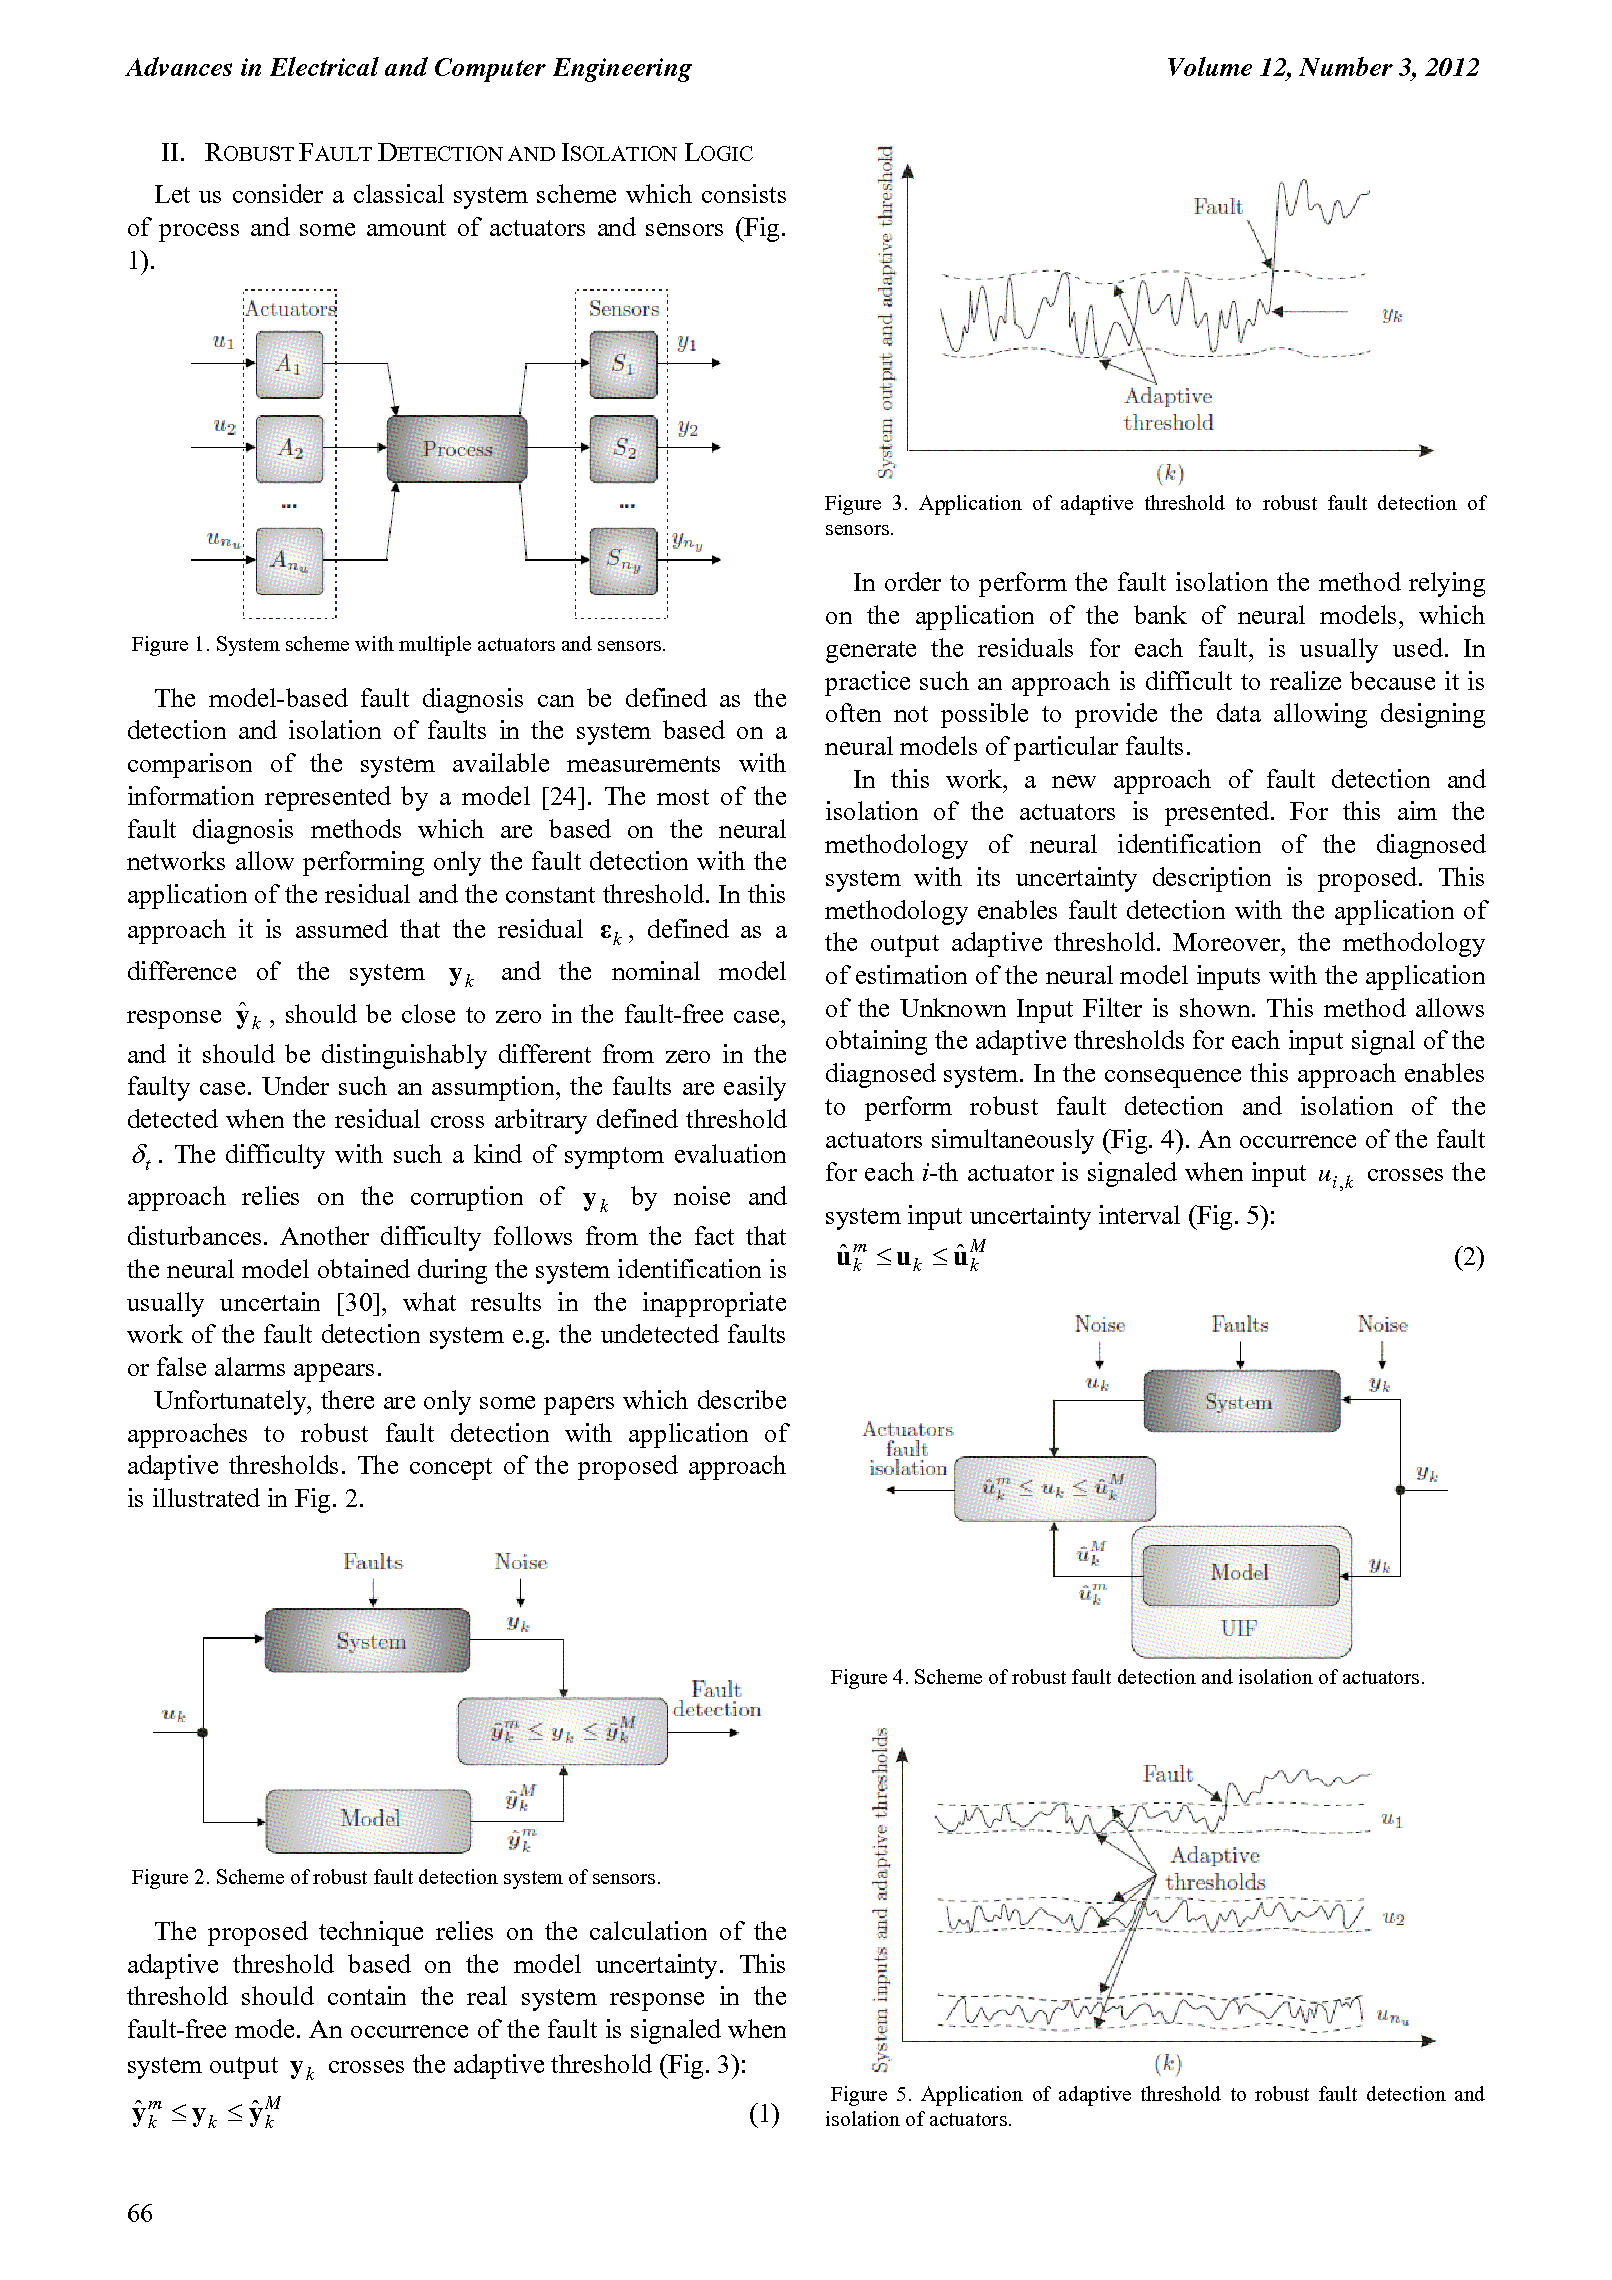 PDF Quickview for paper with DOI:10.4316/AECE.2012.03010